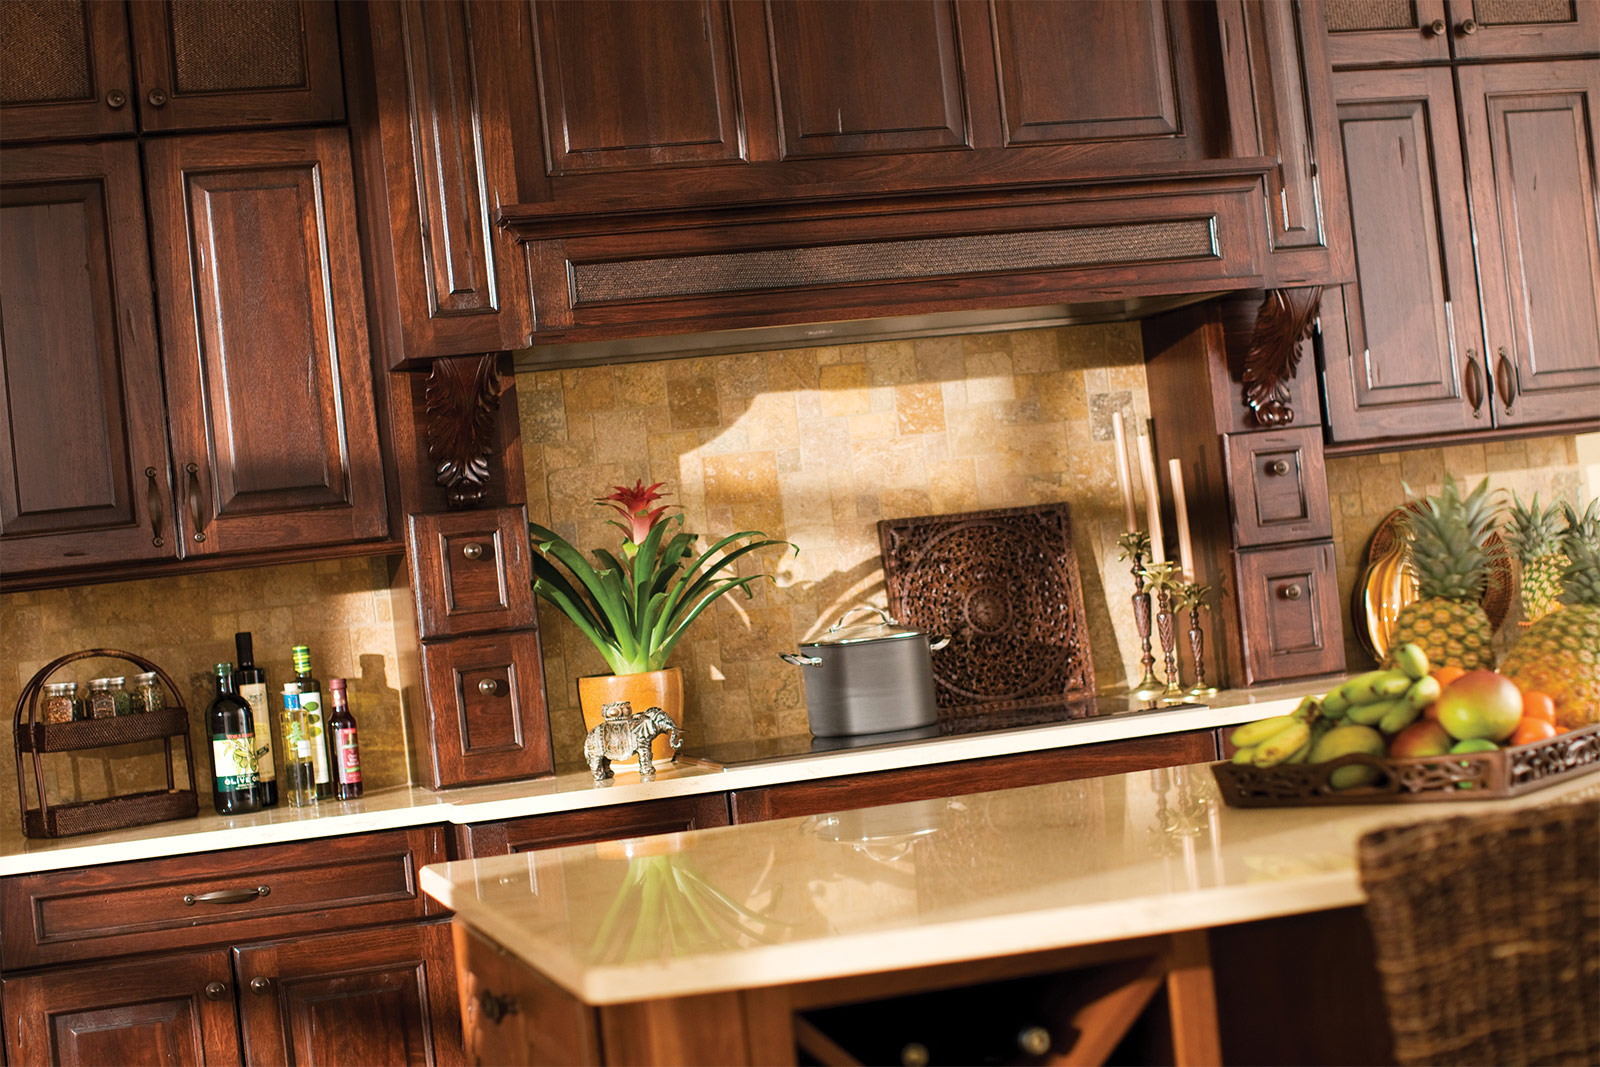 Planning your New Orleans Kitchen: Top 5 Things to Consider